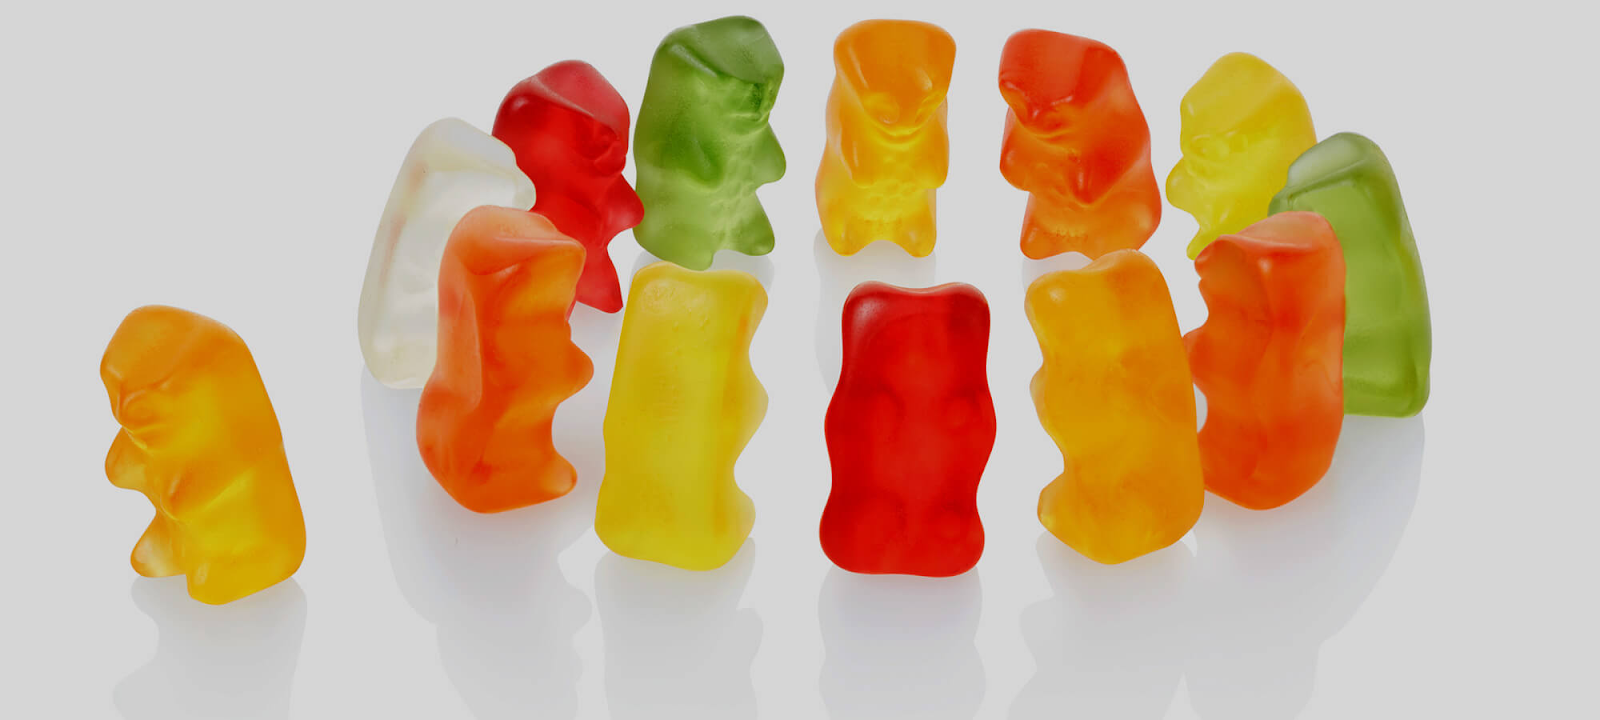 A group of gummy bears excluding one of their kind